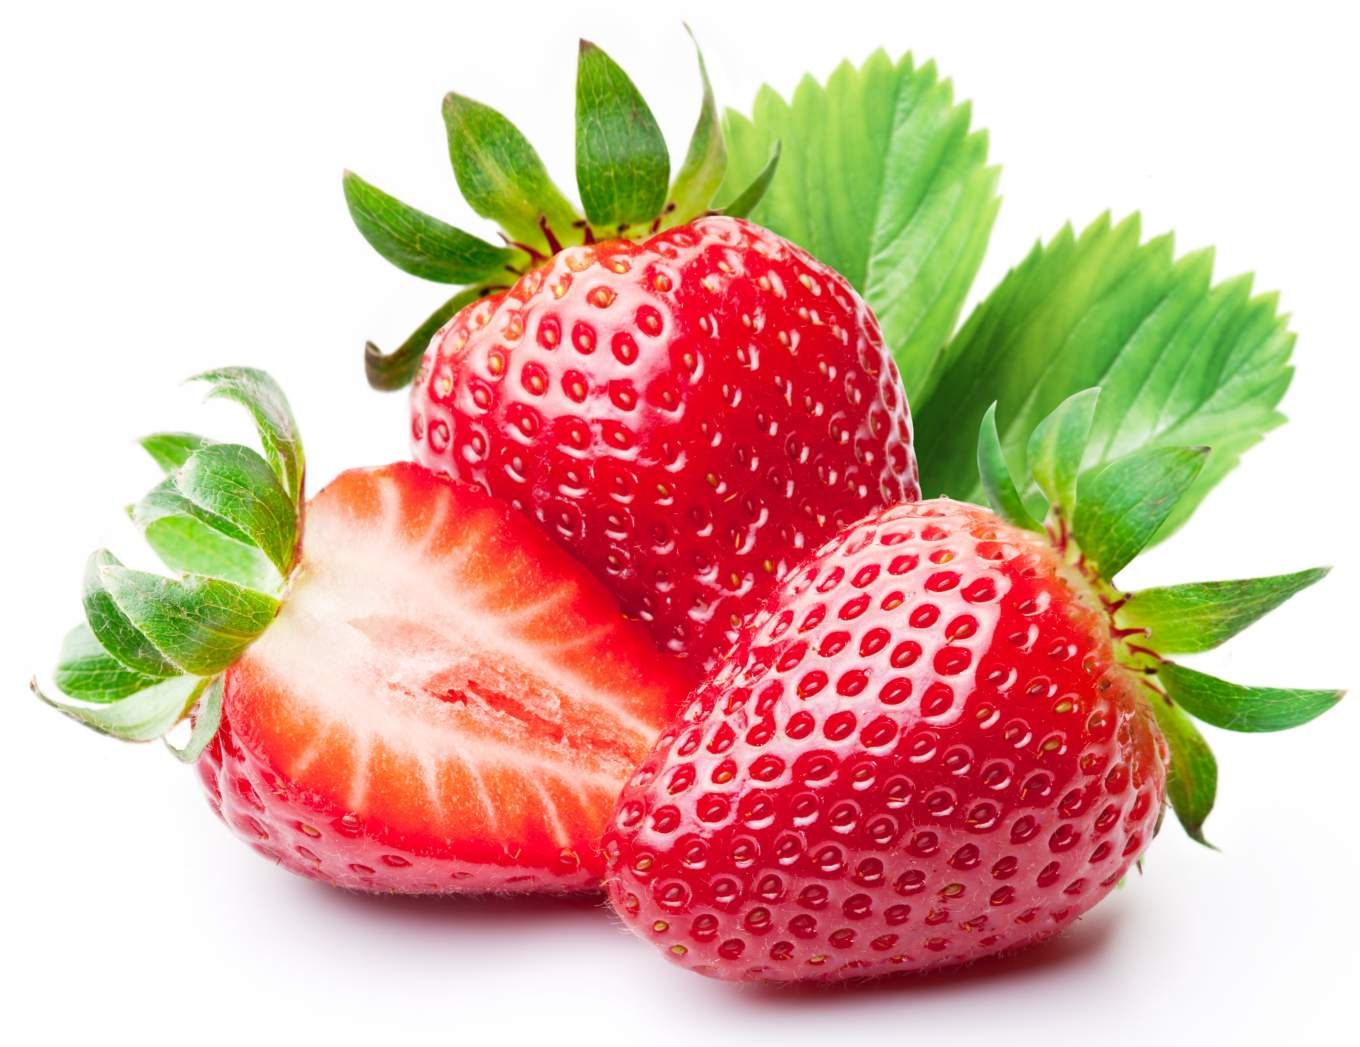 Strawberries: Delicious, Sweet, and Healthy!